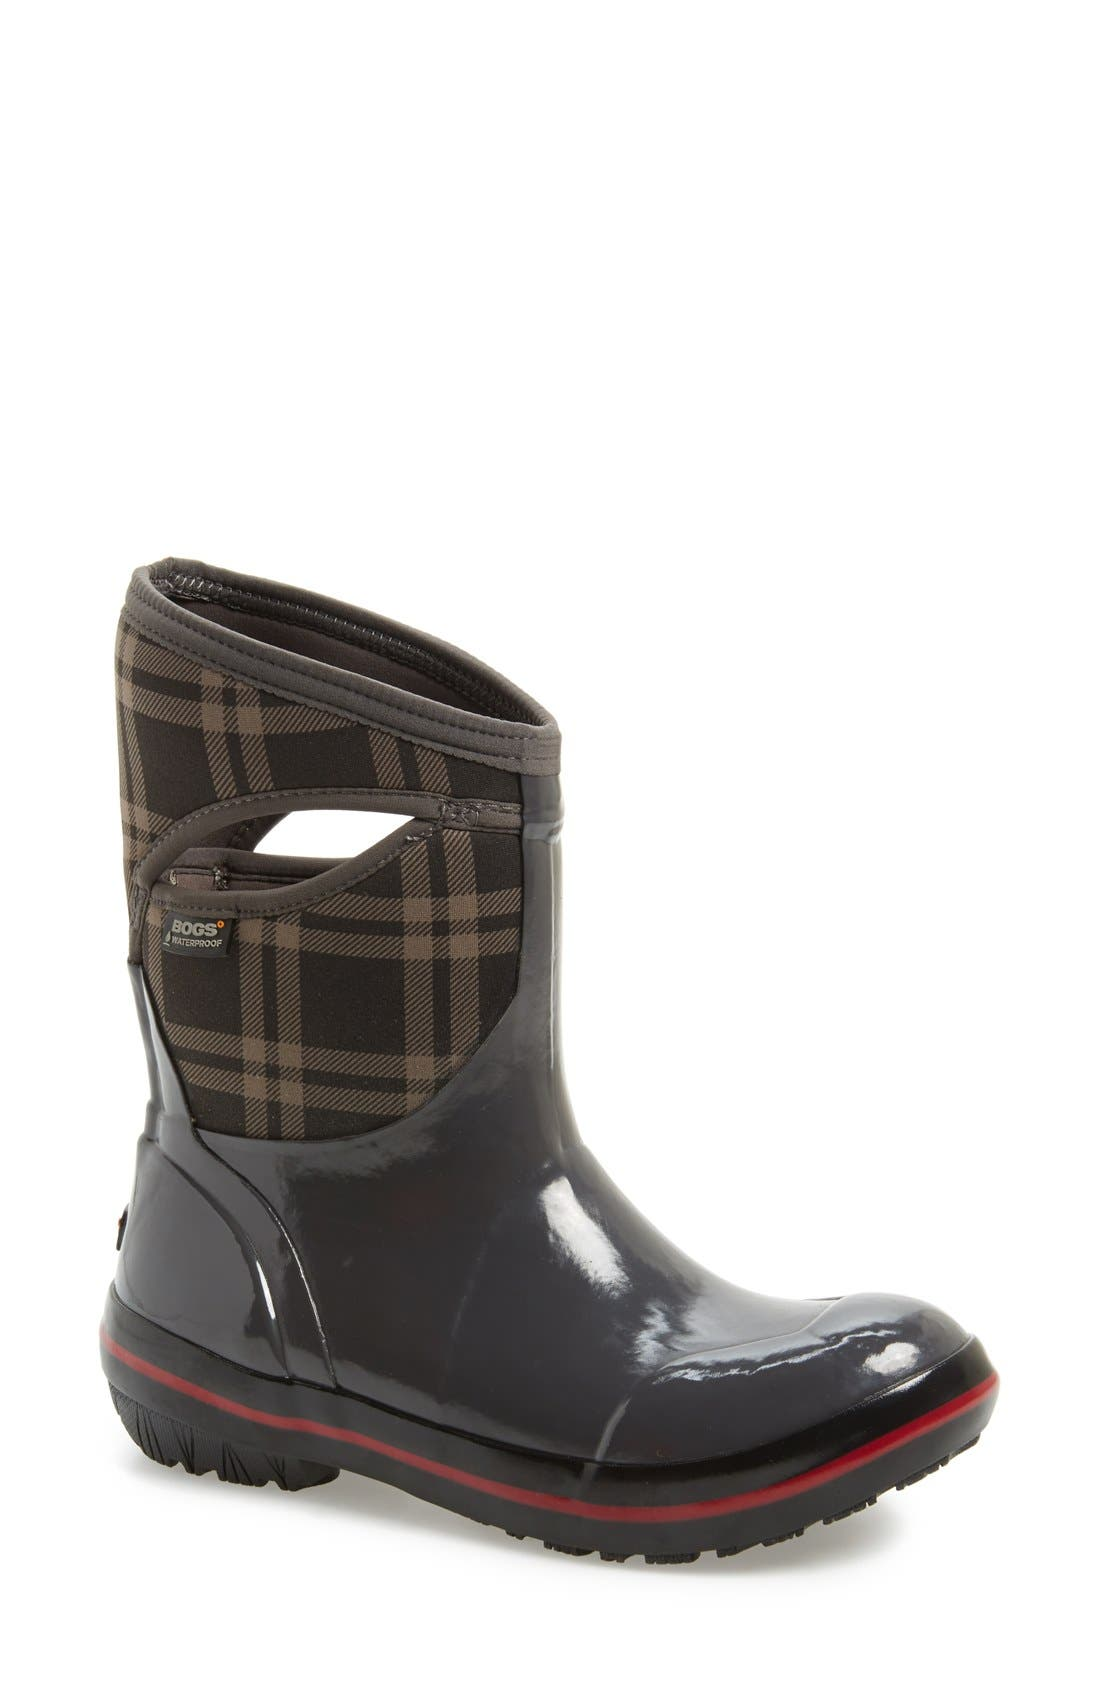 Bogs 'Pimsoll Plaid' Mid High Waterproof Snow Boot with Cutout Handles (Women)